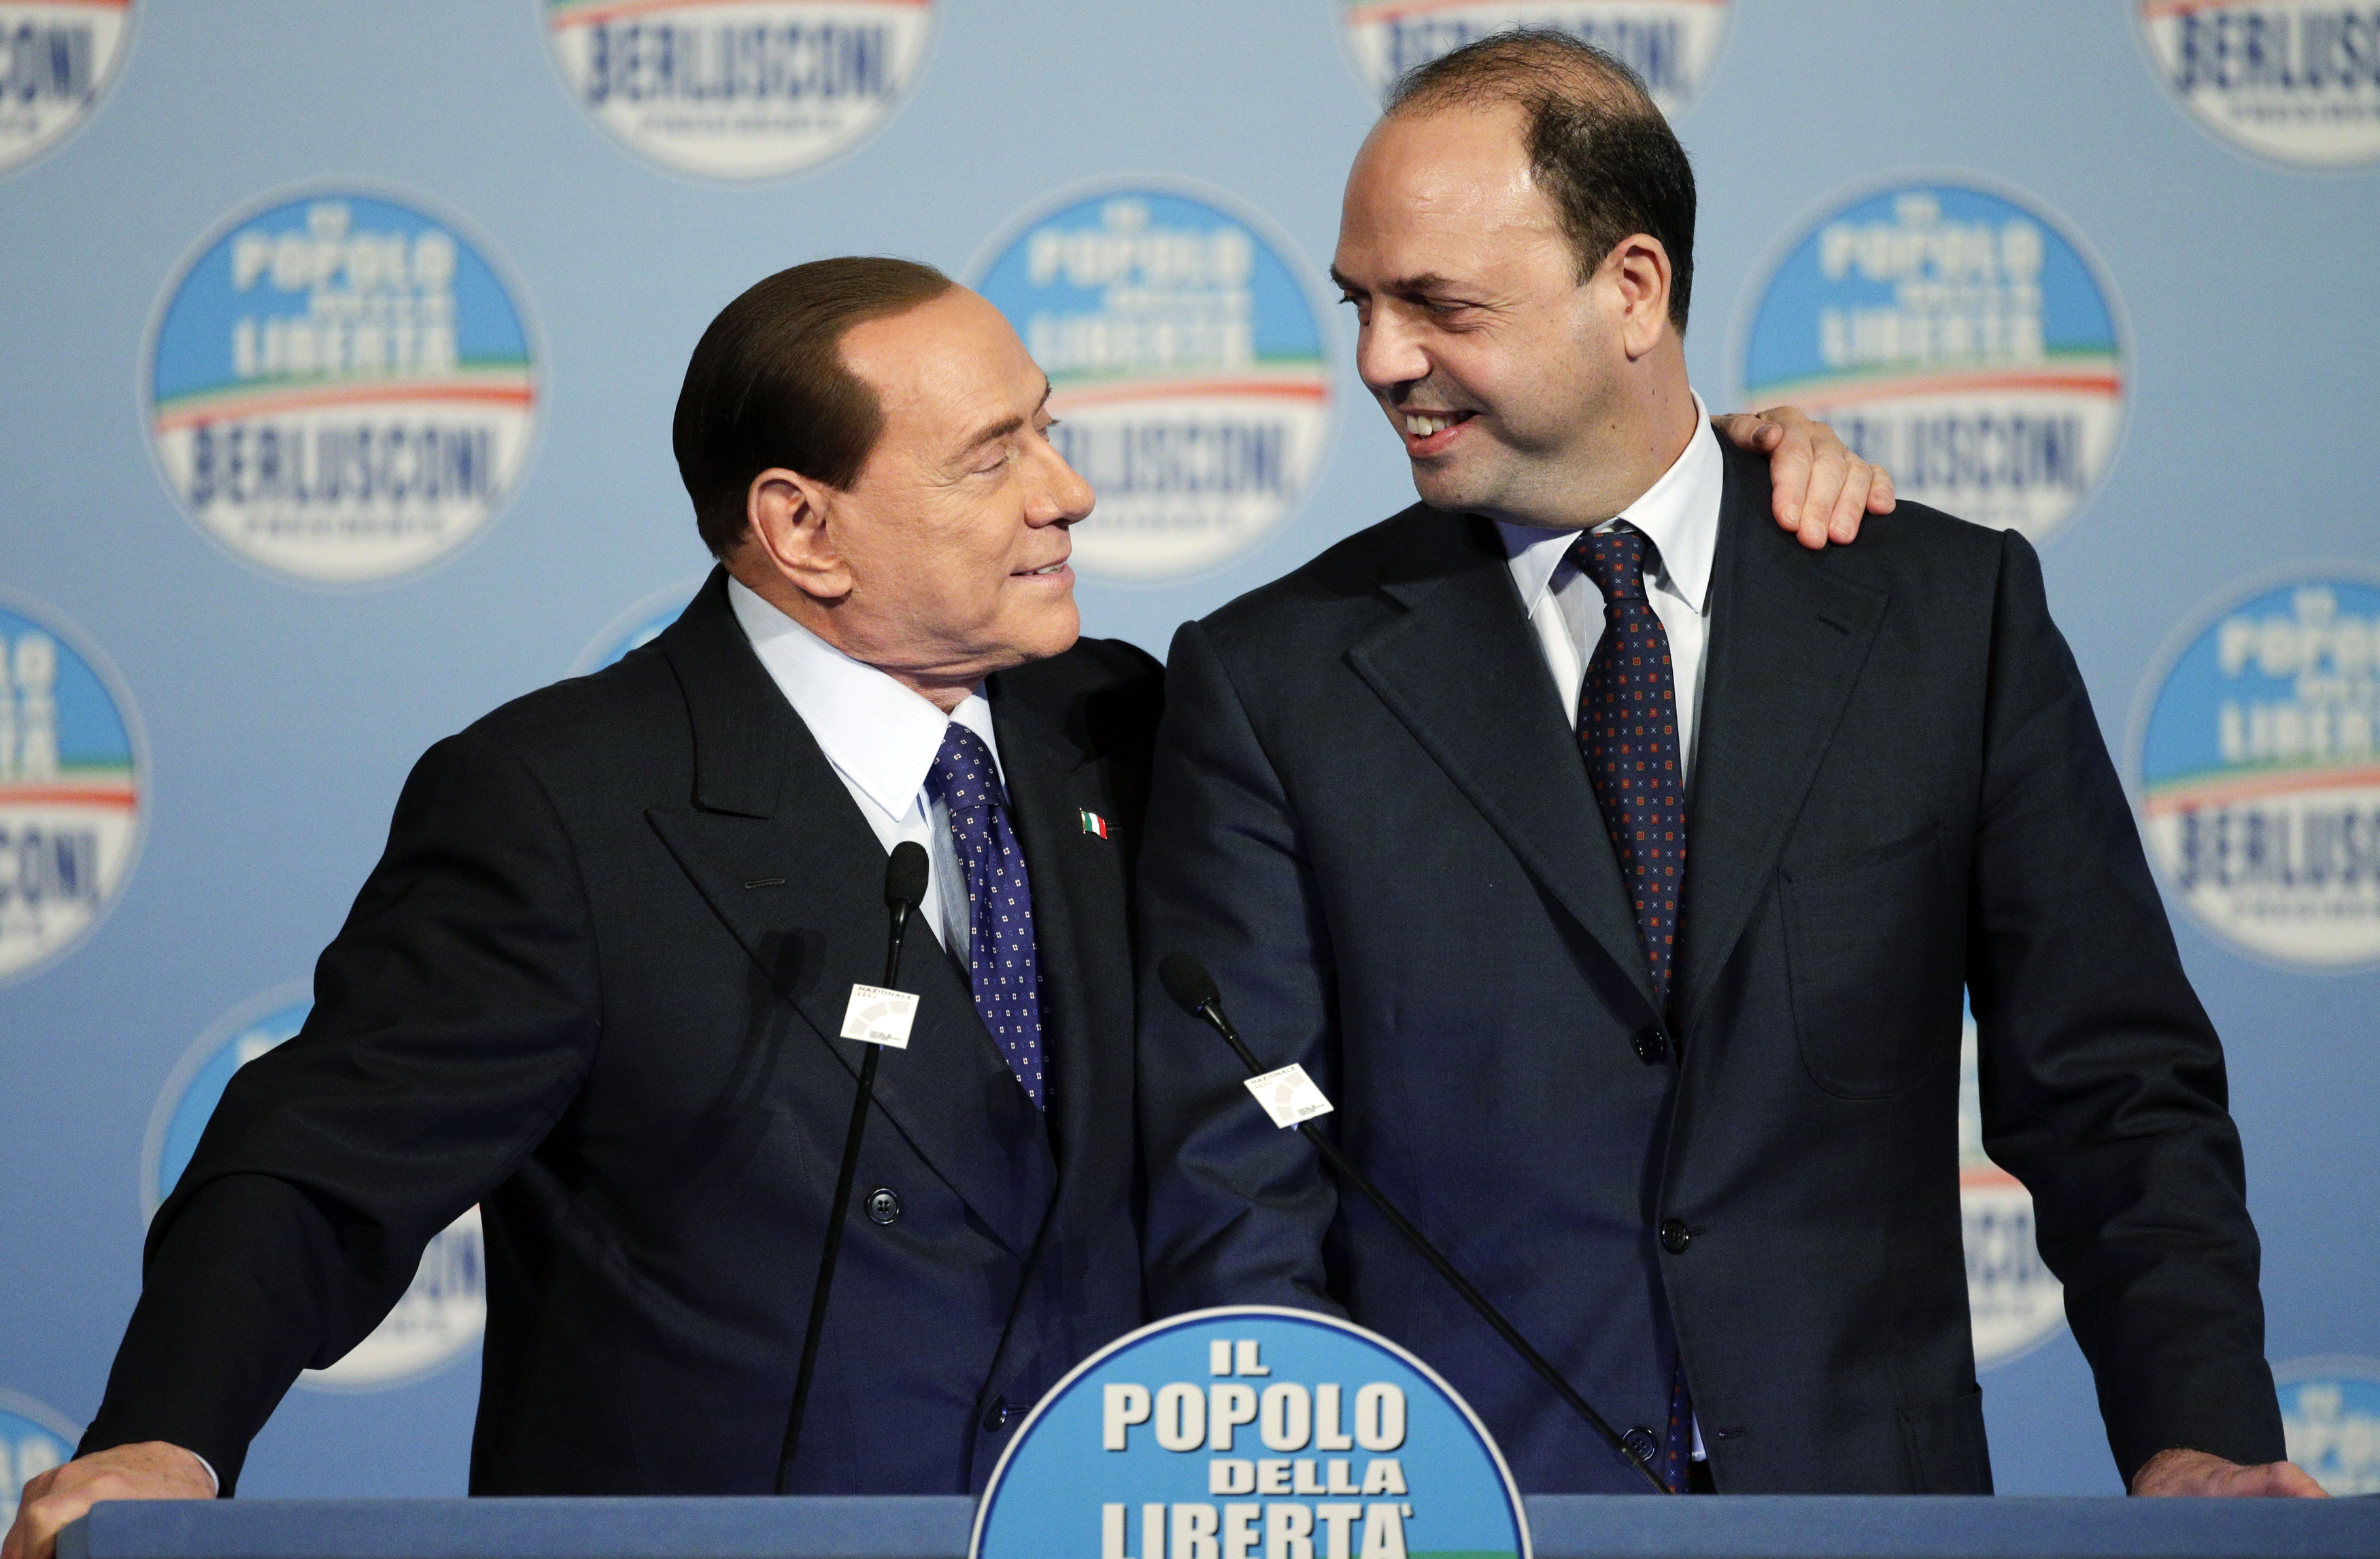 Former Italian Prime Minister Silvio Berlusconi (L) smiles next to People of Freedom Party (PDL) secretary Angelino Alfano as he arrives for a political rally in downtown Rome January 25, 2013.